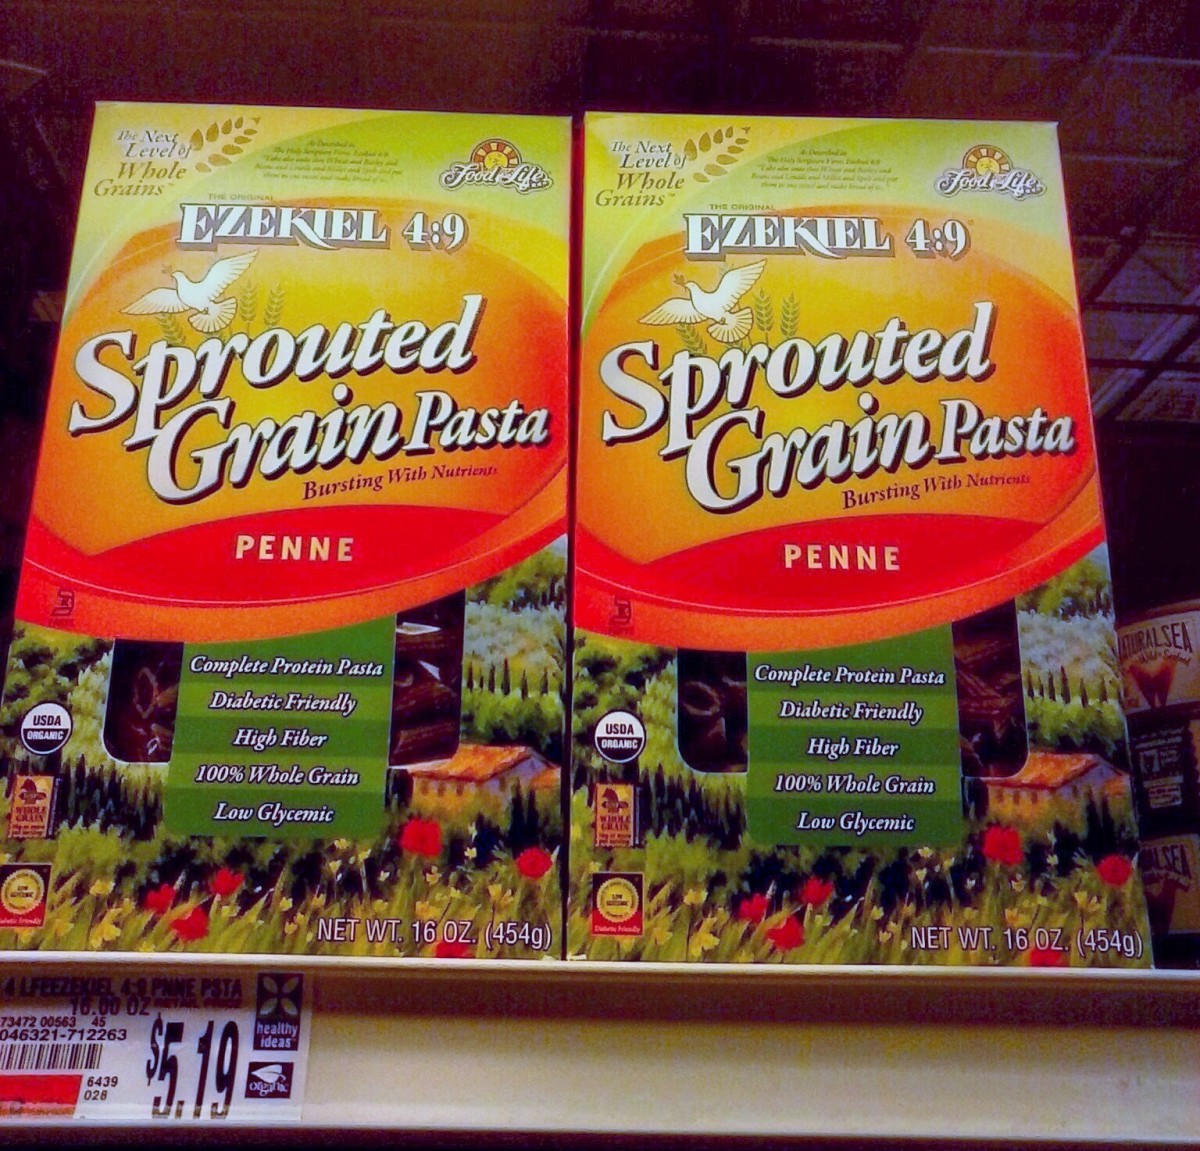 Ezekiel 4:9 sprouted pasta is lower carb and yeast free.